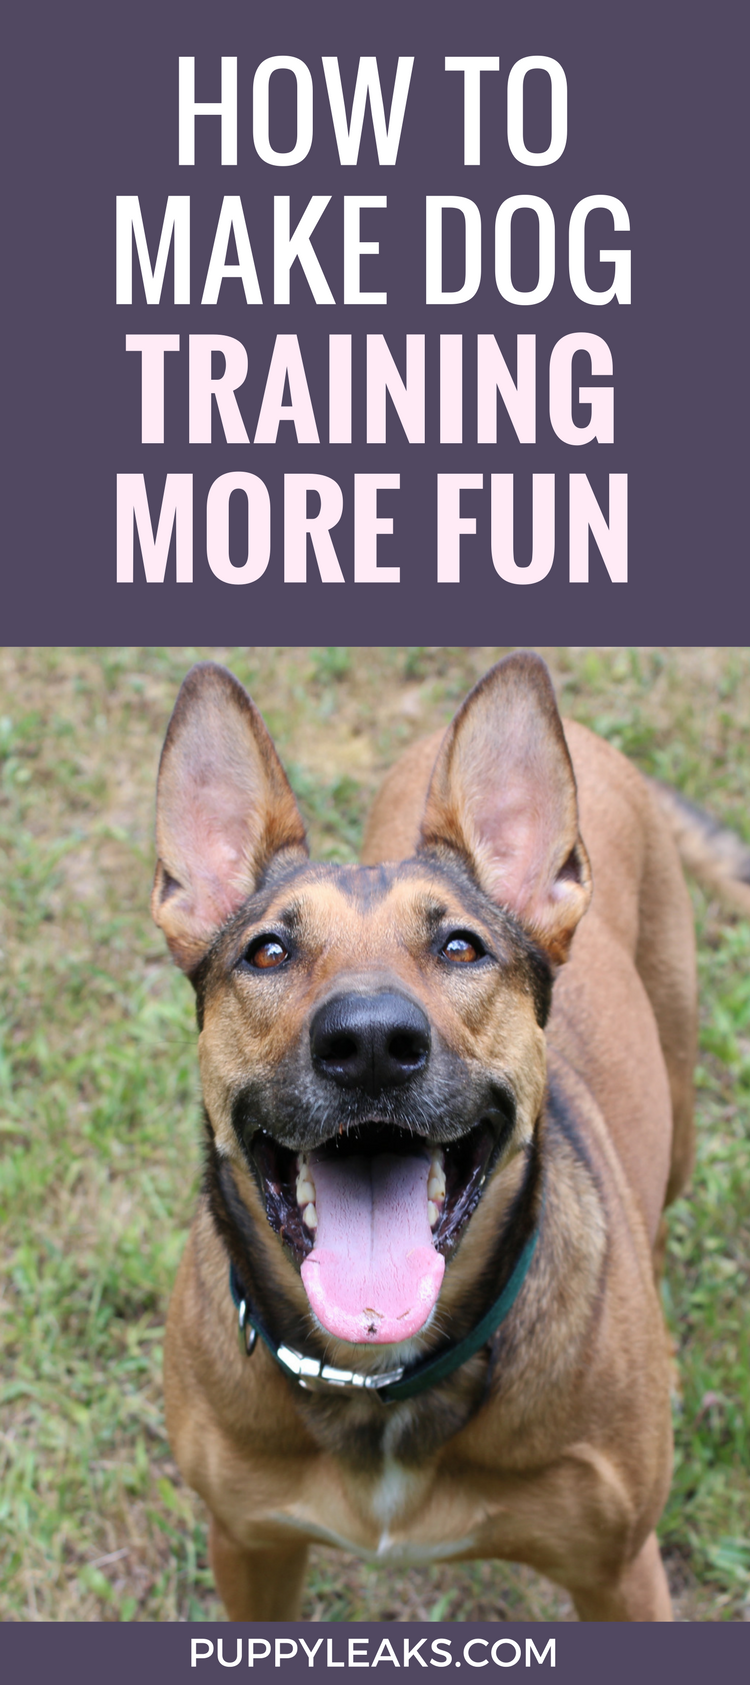 How to make dog training more fun & interesting. How switching up your dog training rewards will keep your dog focused and entertained.